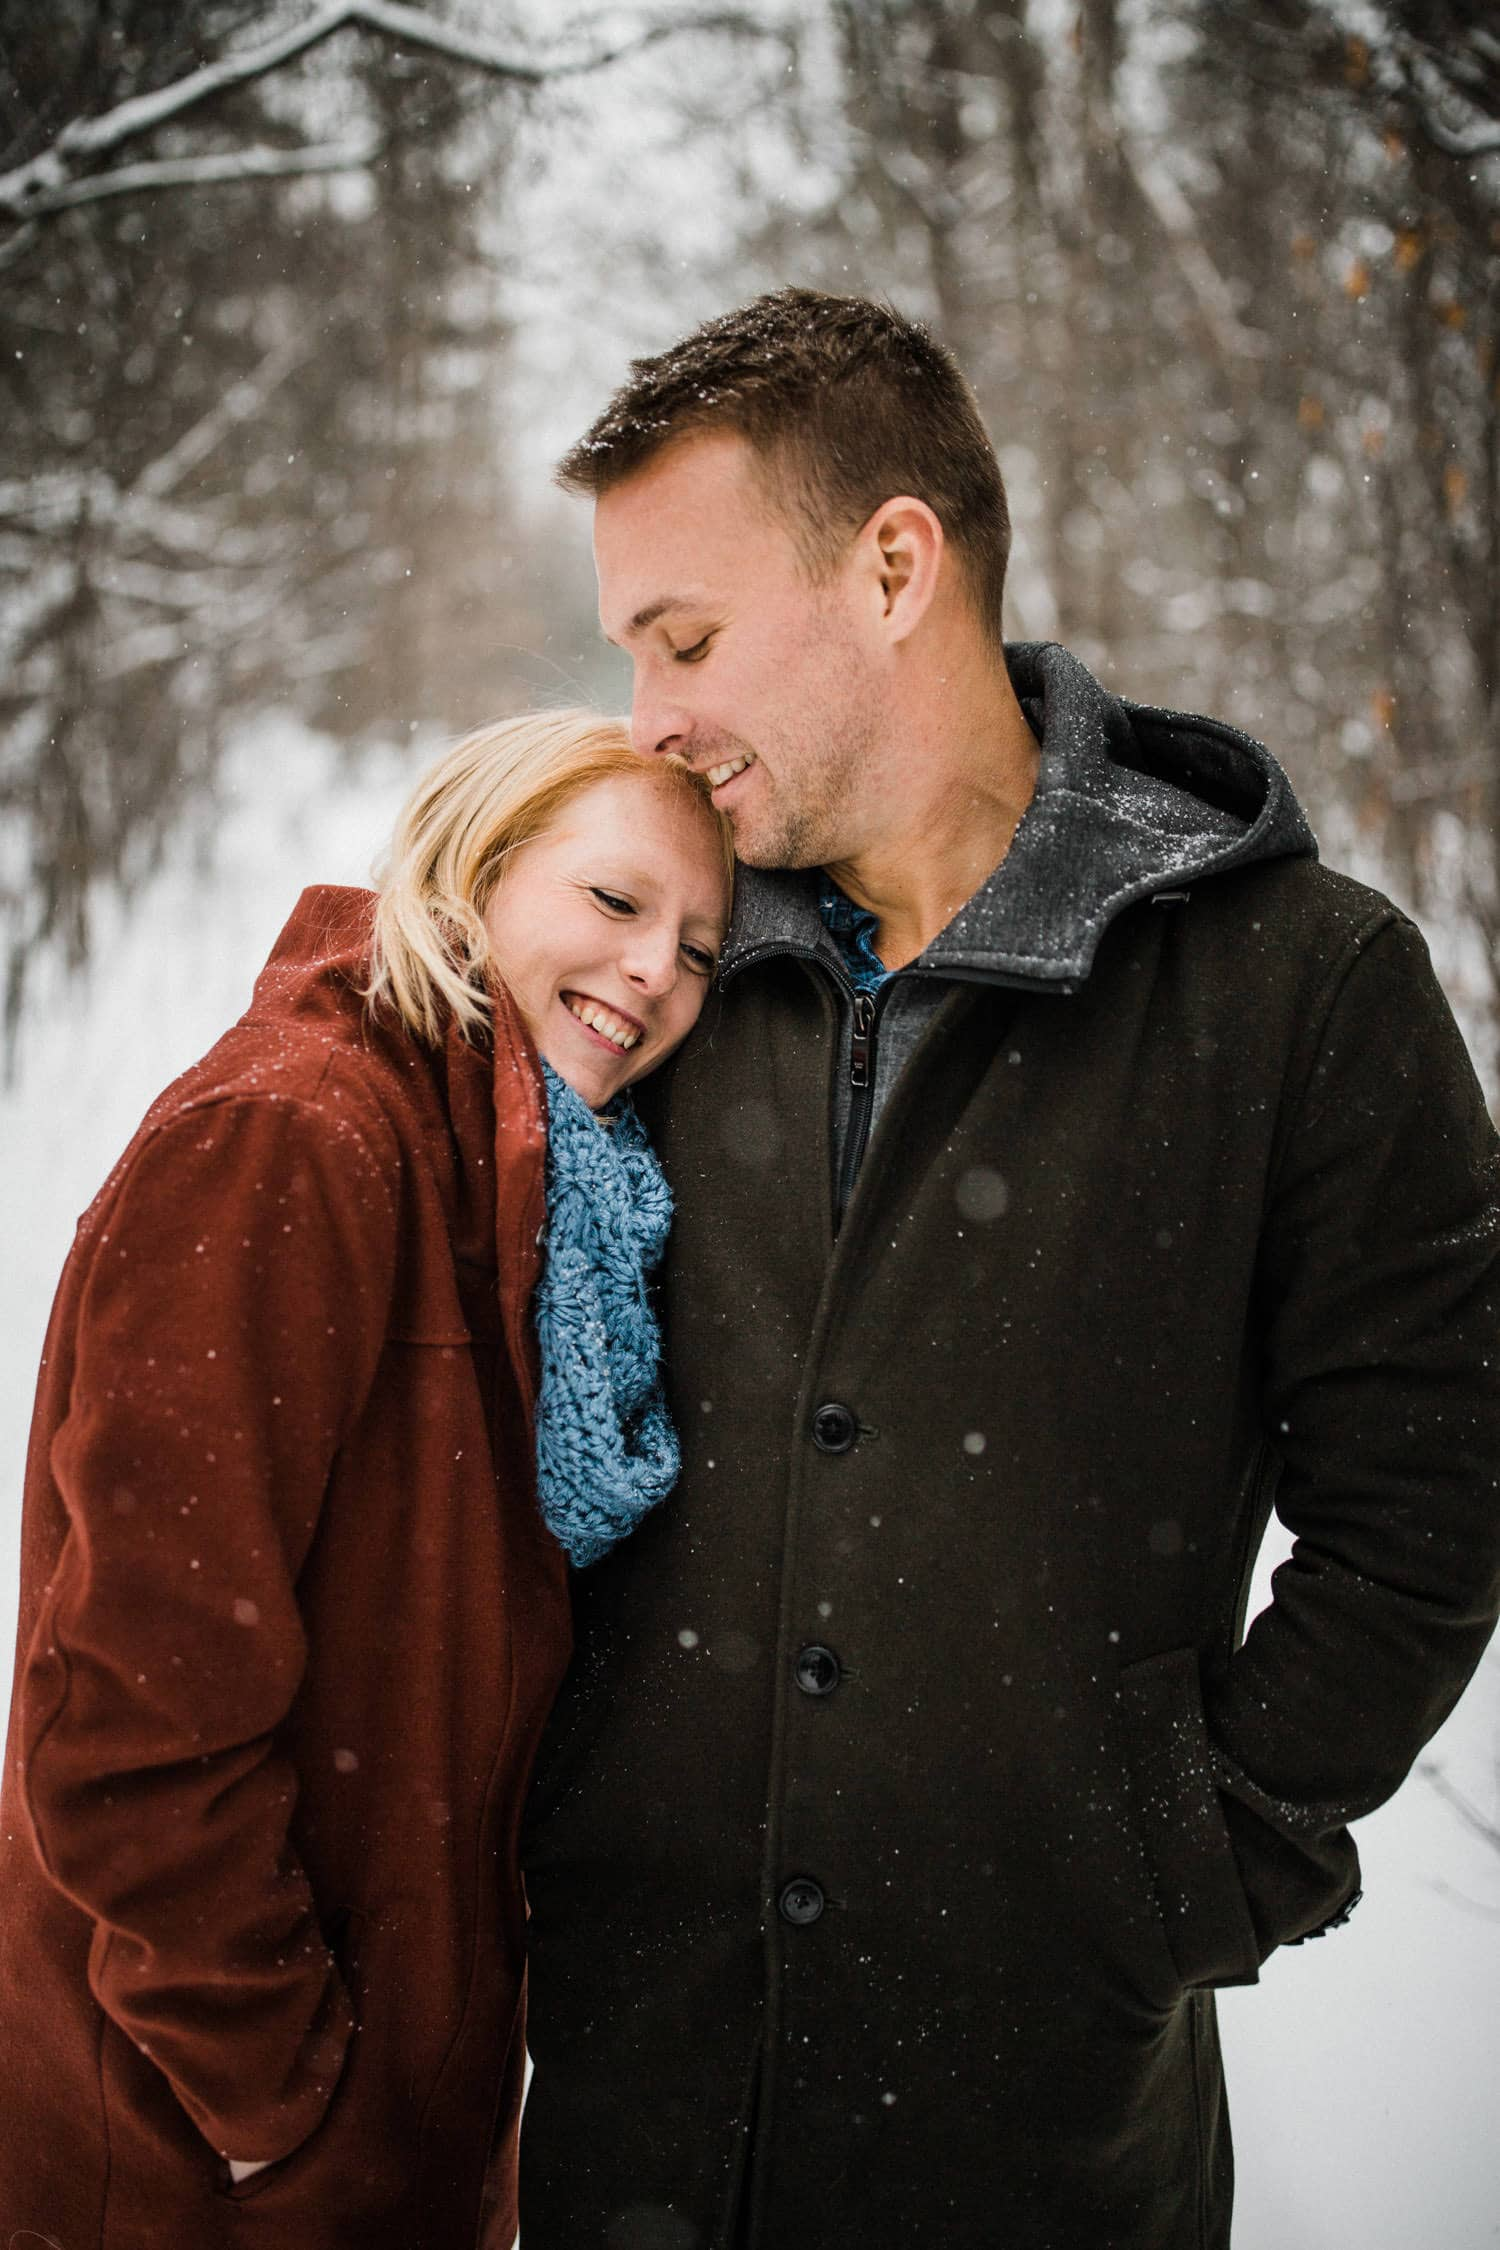 couple stand together outside during snowfall - ottawa winter engagement photos